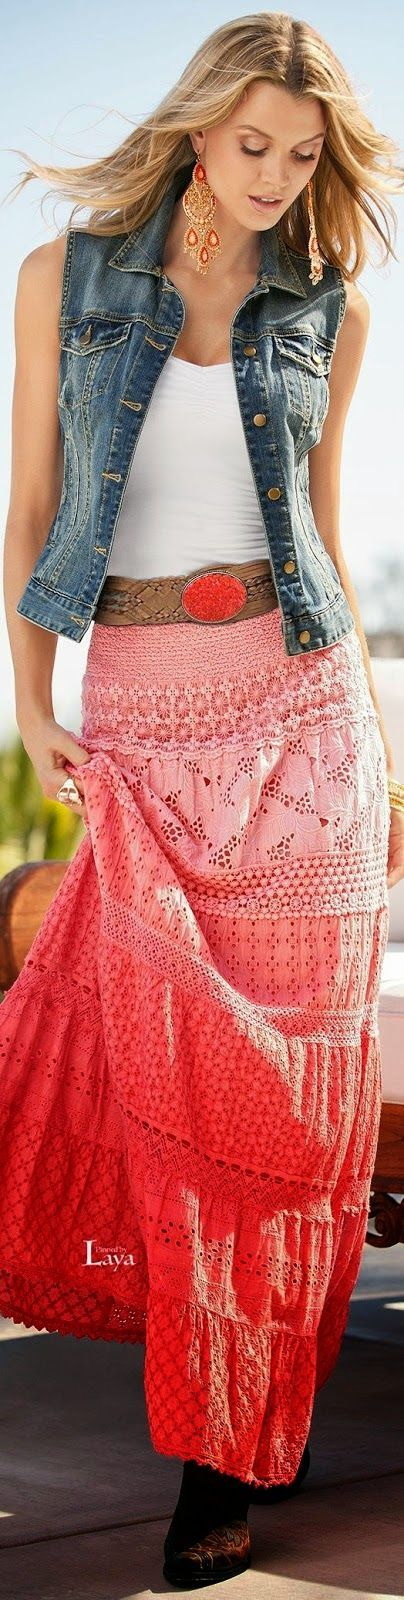 Western Boots, Clothing, Accessories